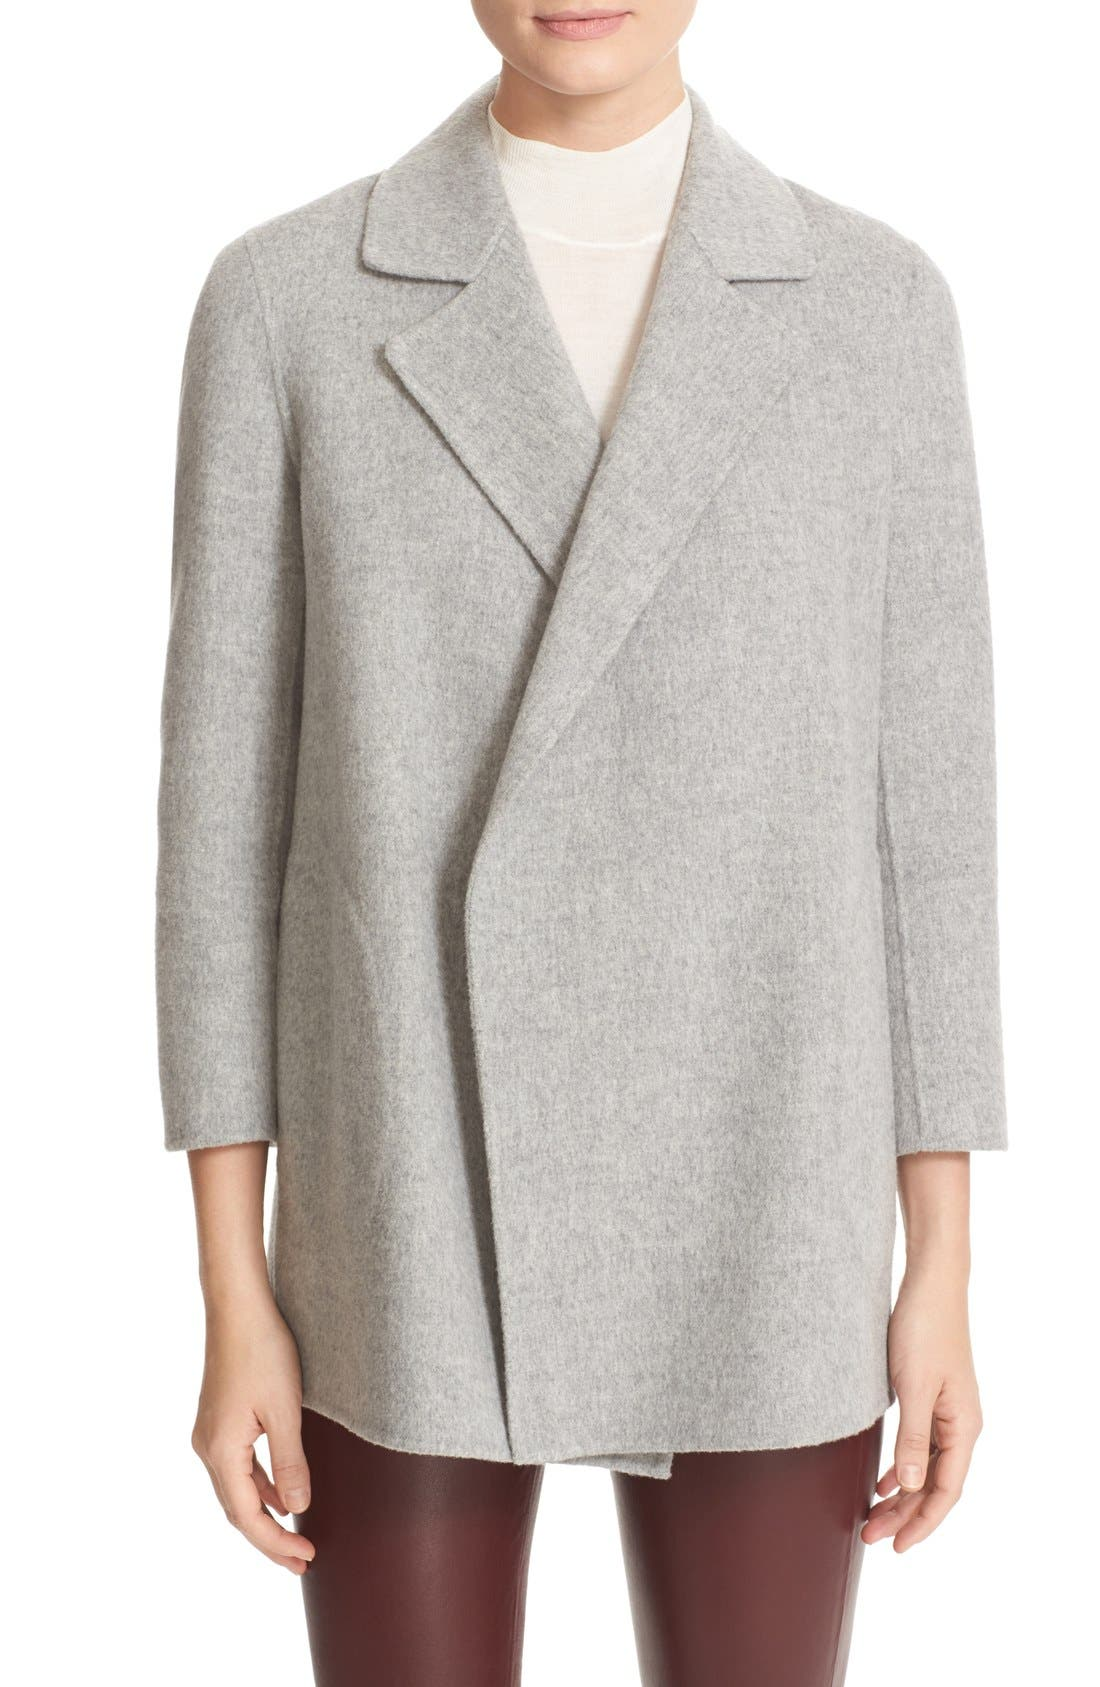 Alternate Image 1 Selected - Theory 'Clairene New Divide' Wool & Cashmere Open Front Topper